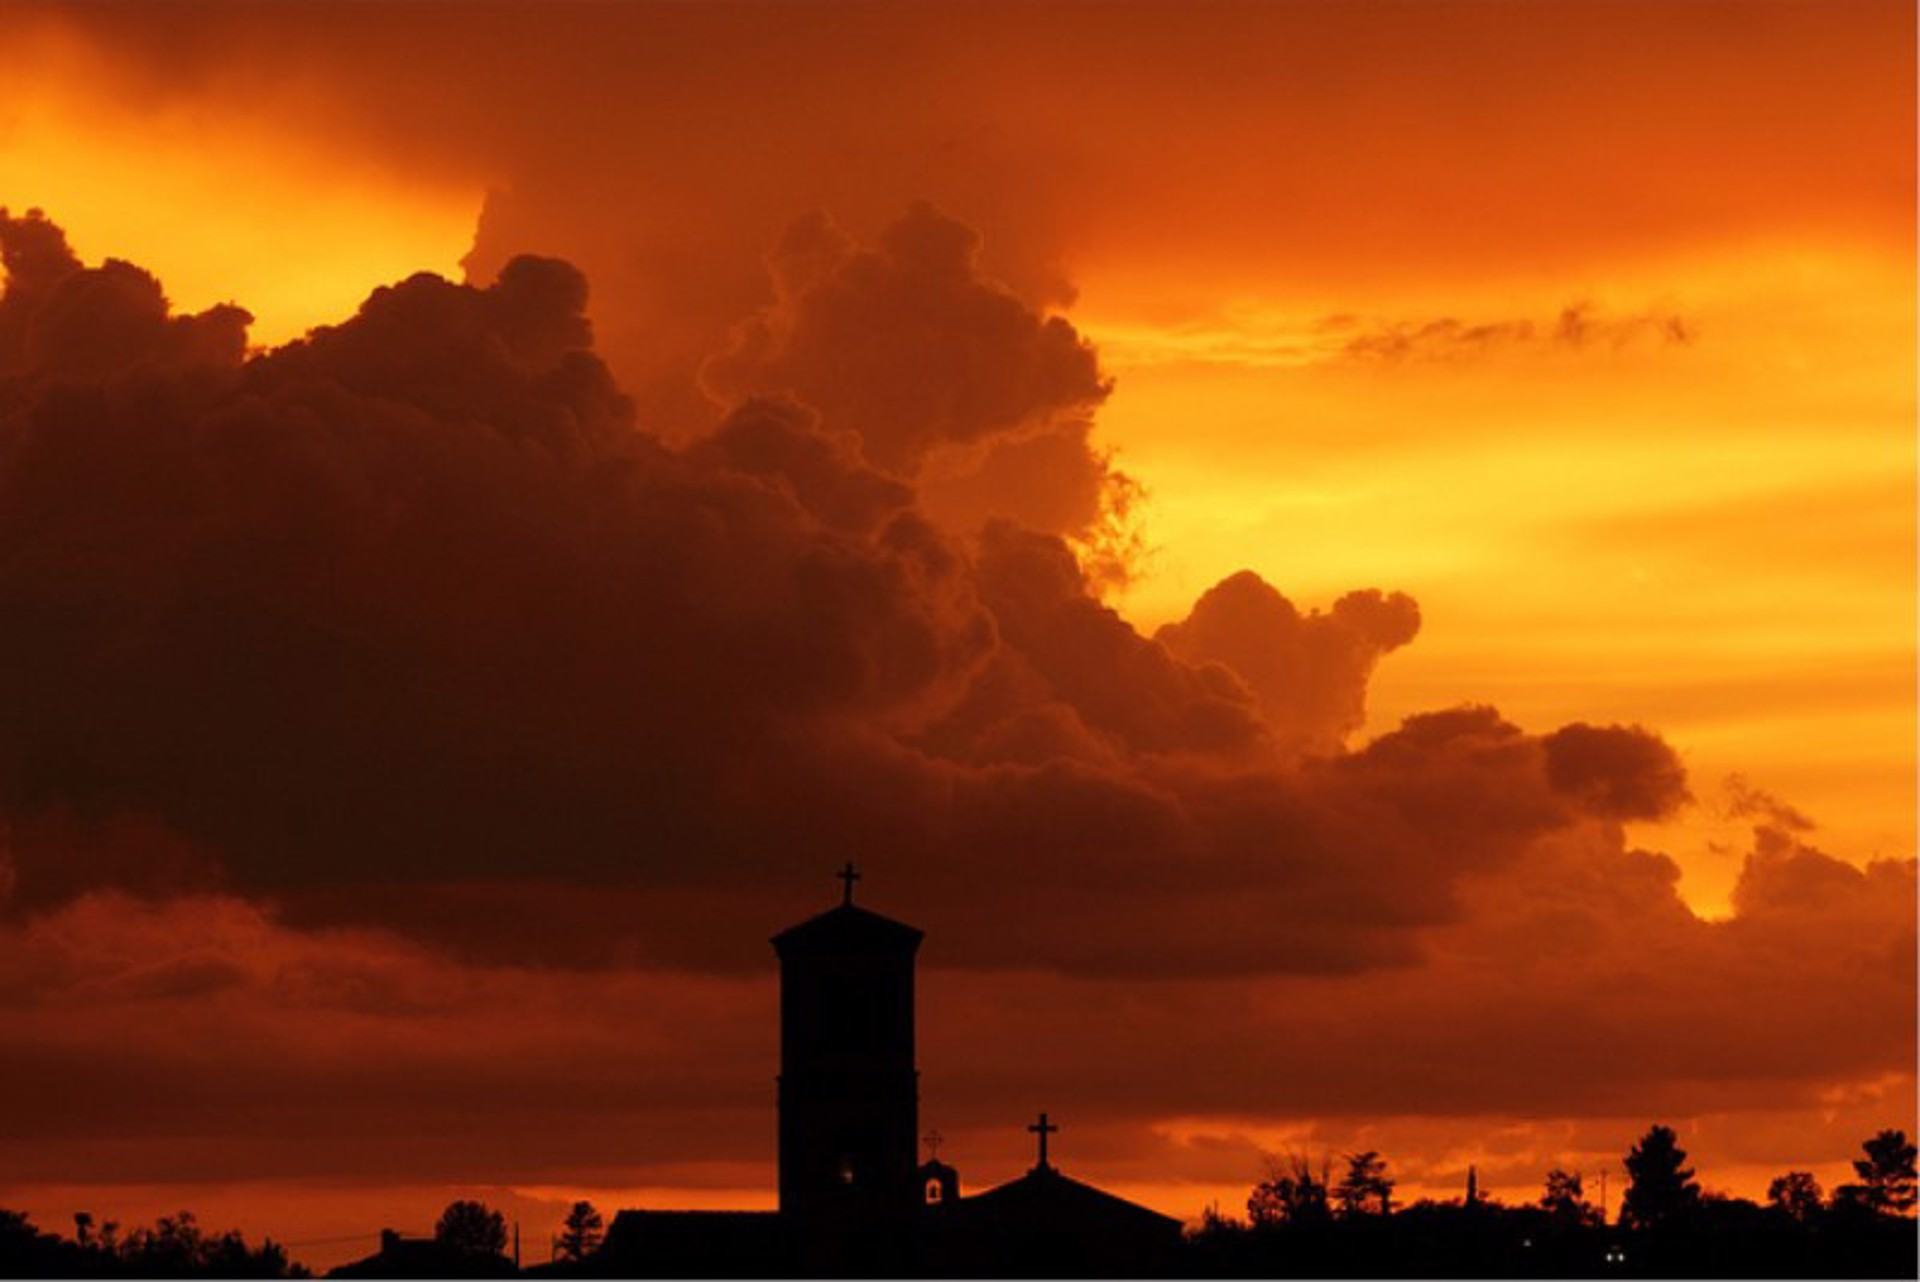 Sunset Over Sacred Heart, Nogales by John Hays